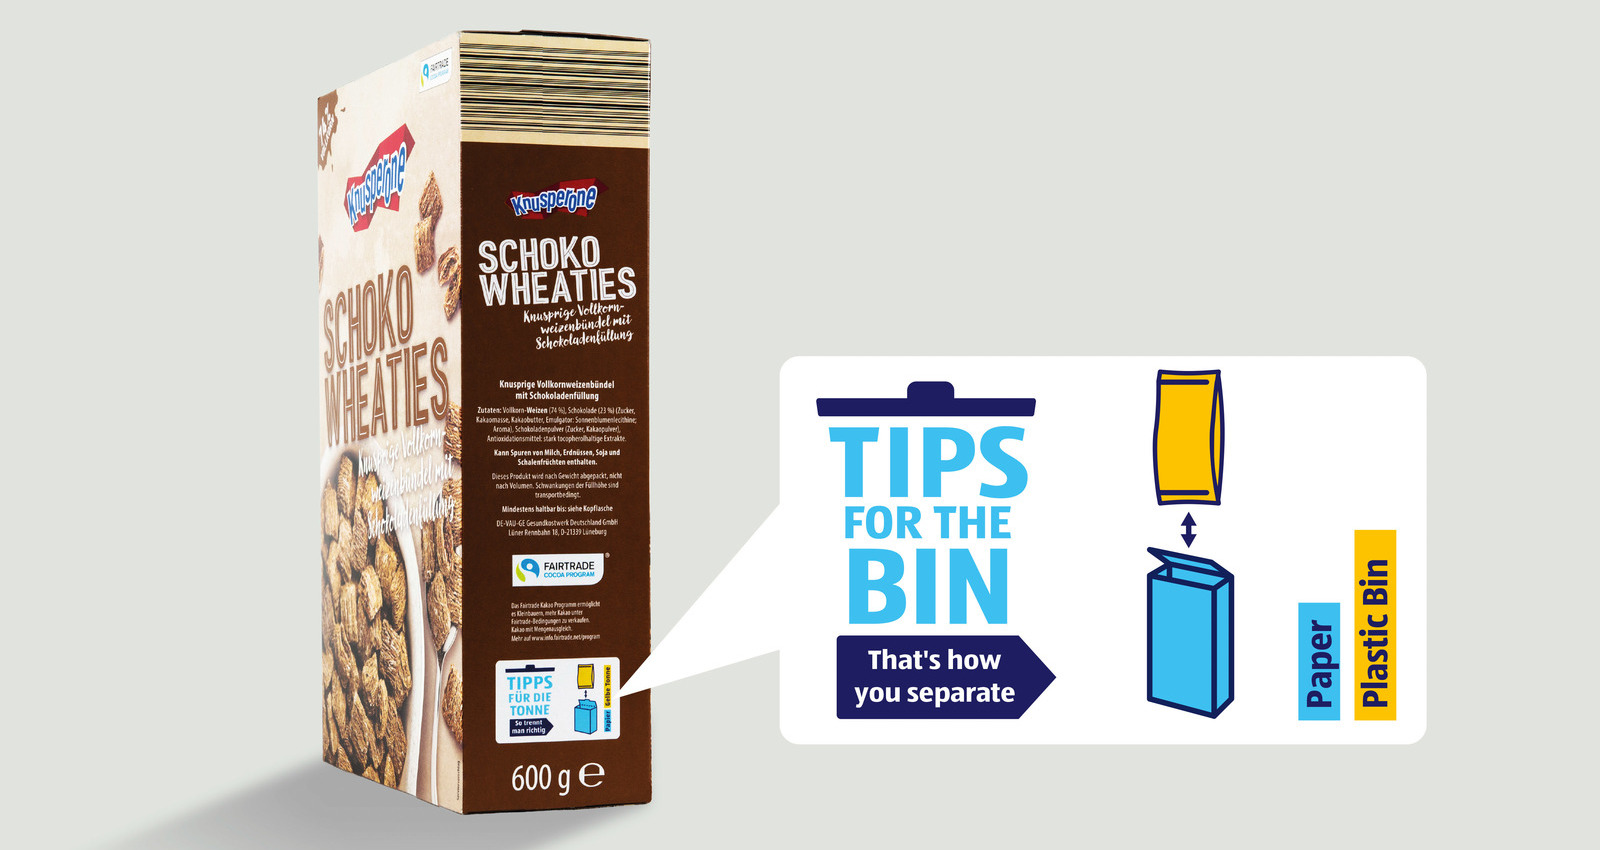 Tips for the bin